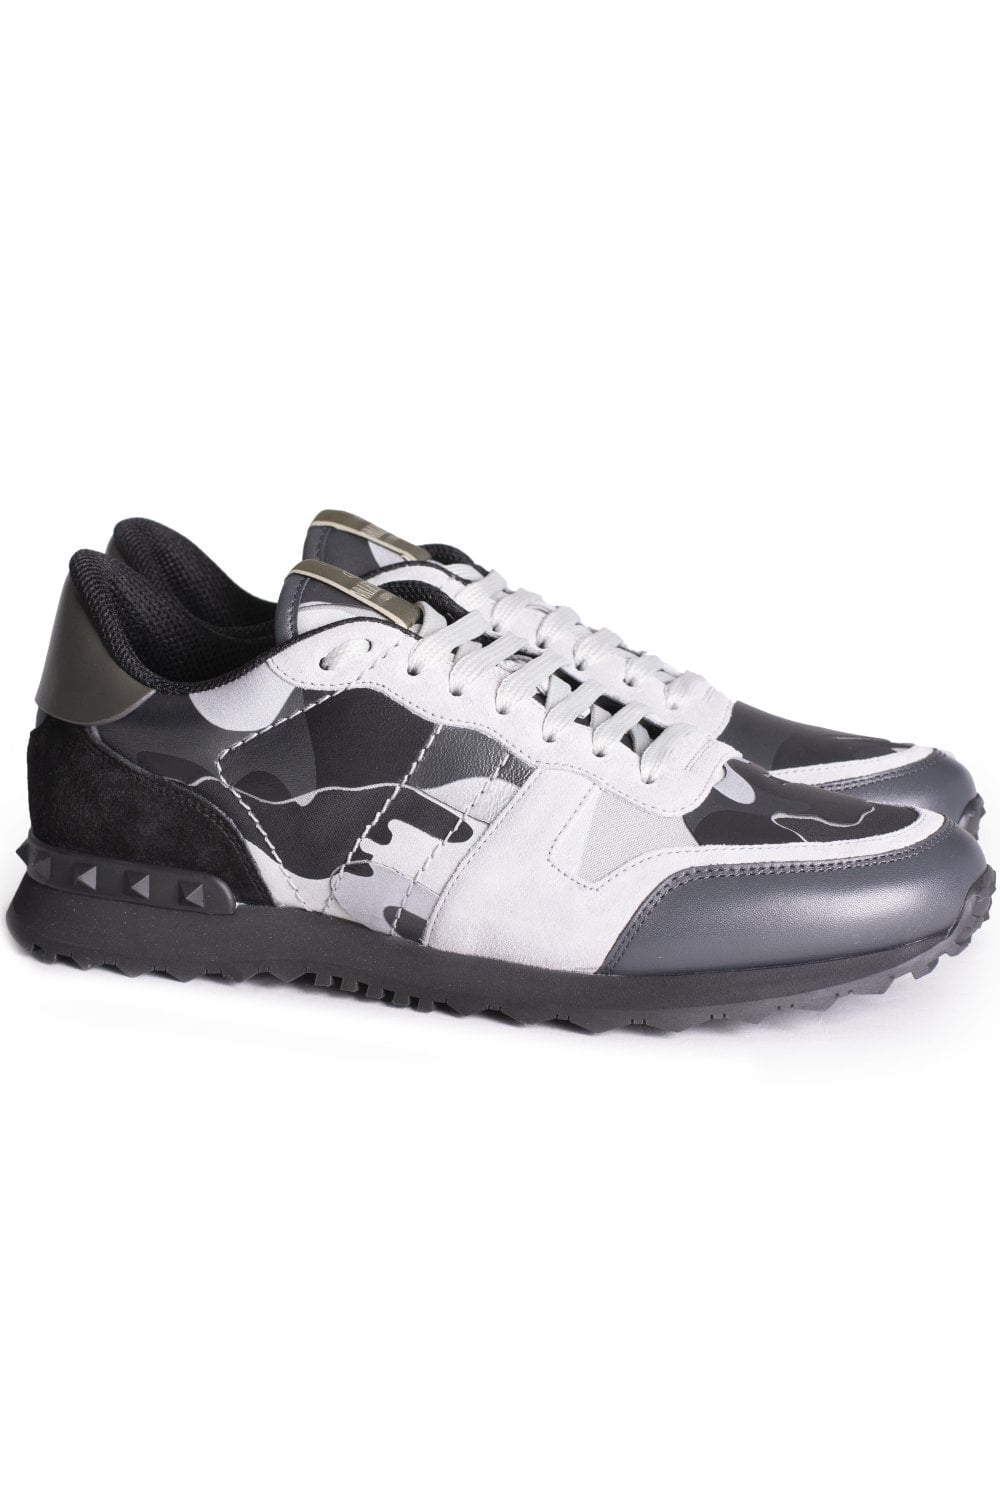 e1350a3290d4 VALENTINO Valentino Luminous Camouflage Rockrunner Sneakers ...